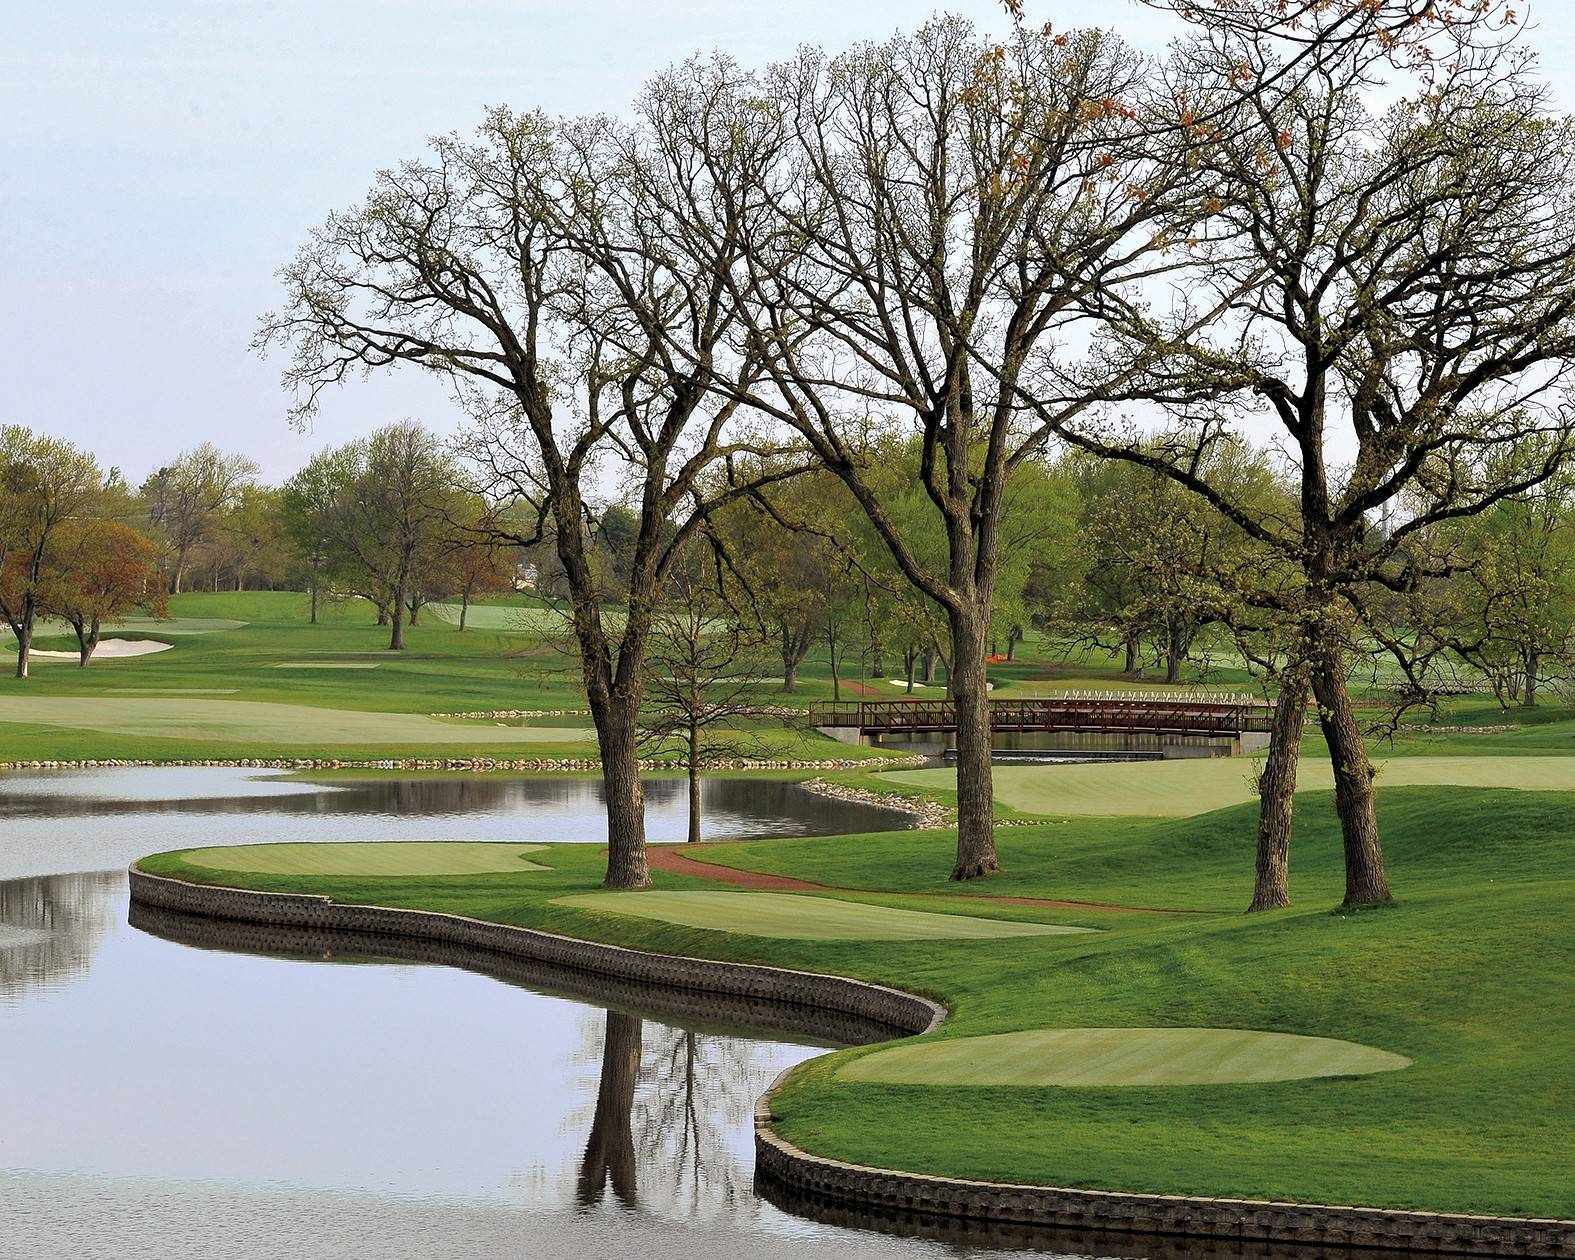 Course No. 1 at Medinah reopened this month, and architect Tom Doak created six new holes and made adjustments to 12 other holes as part of the renovation.